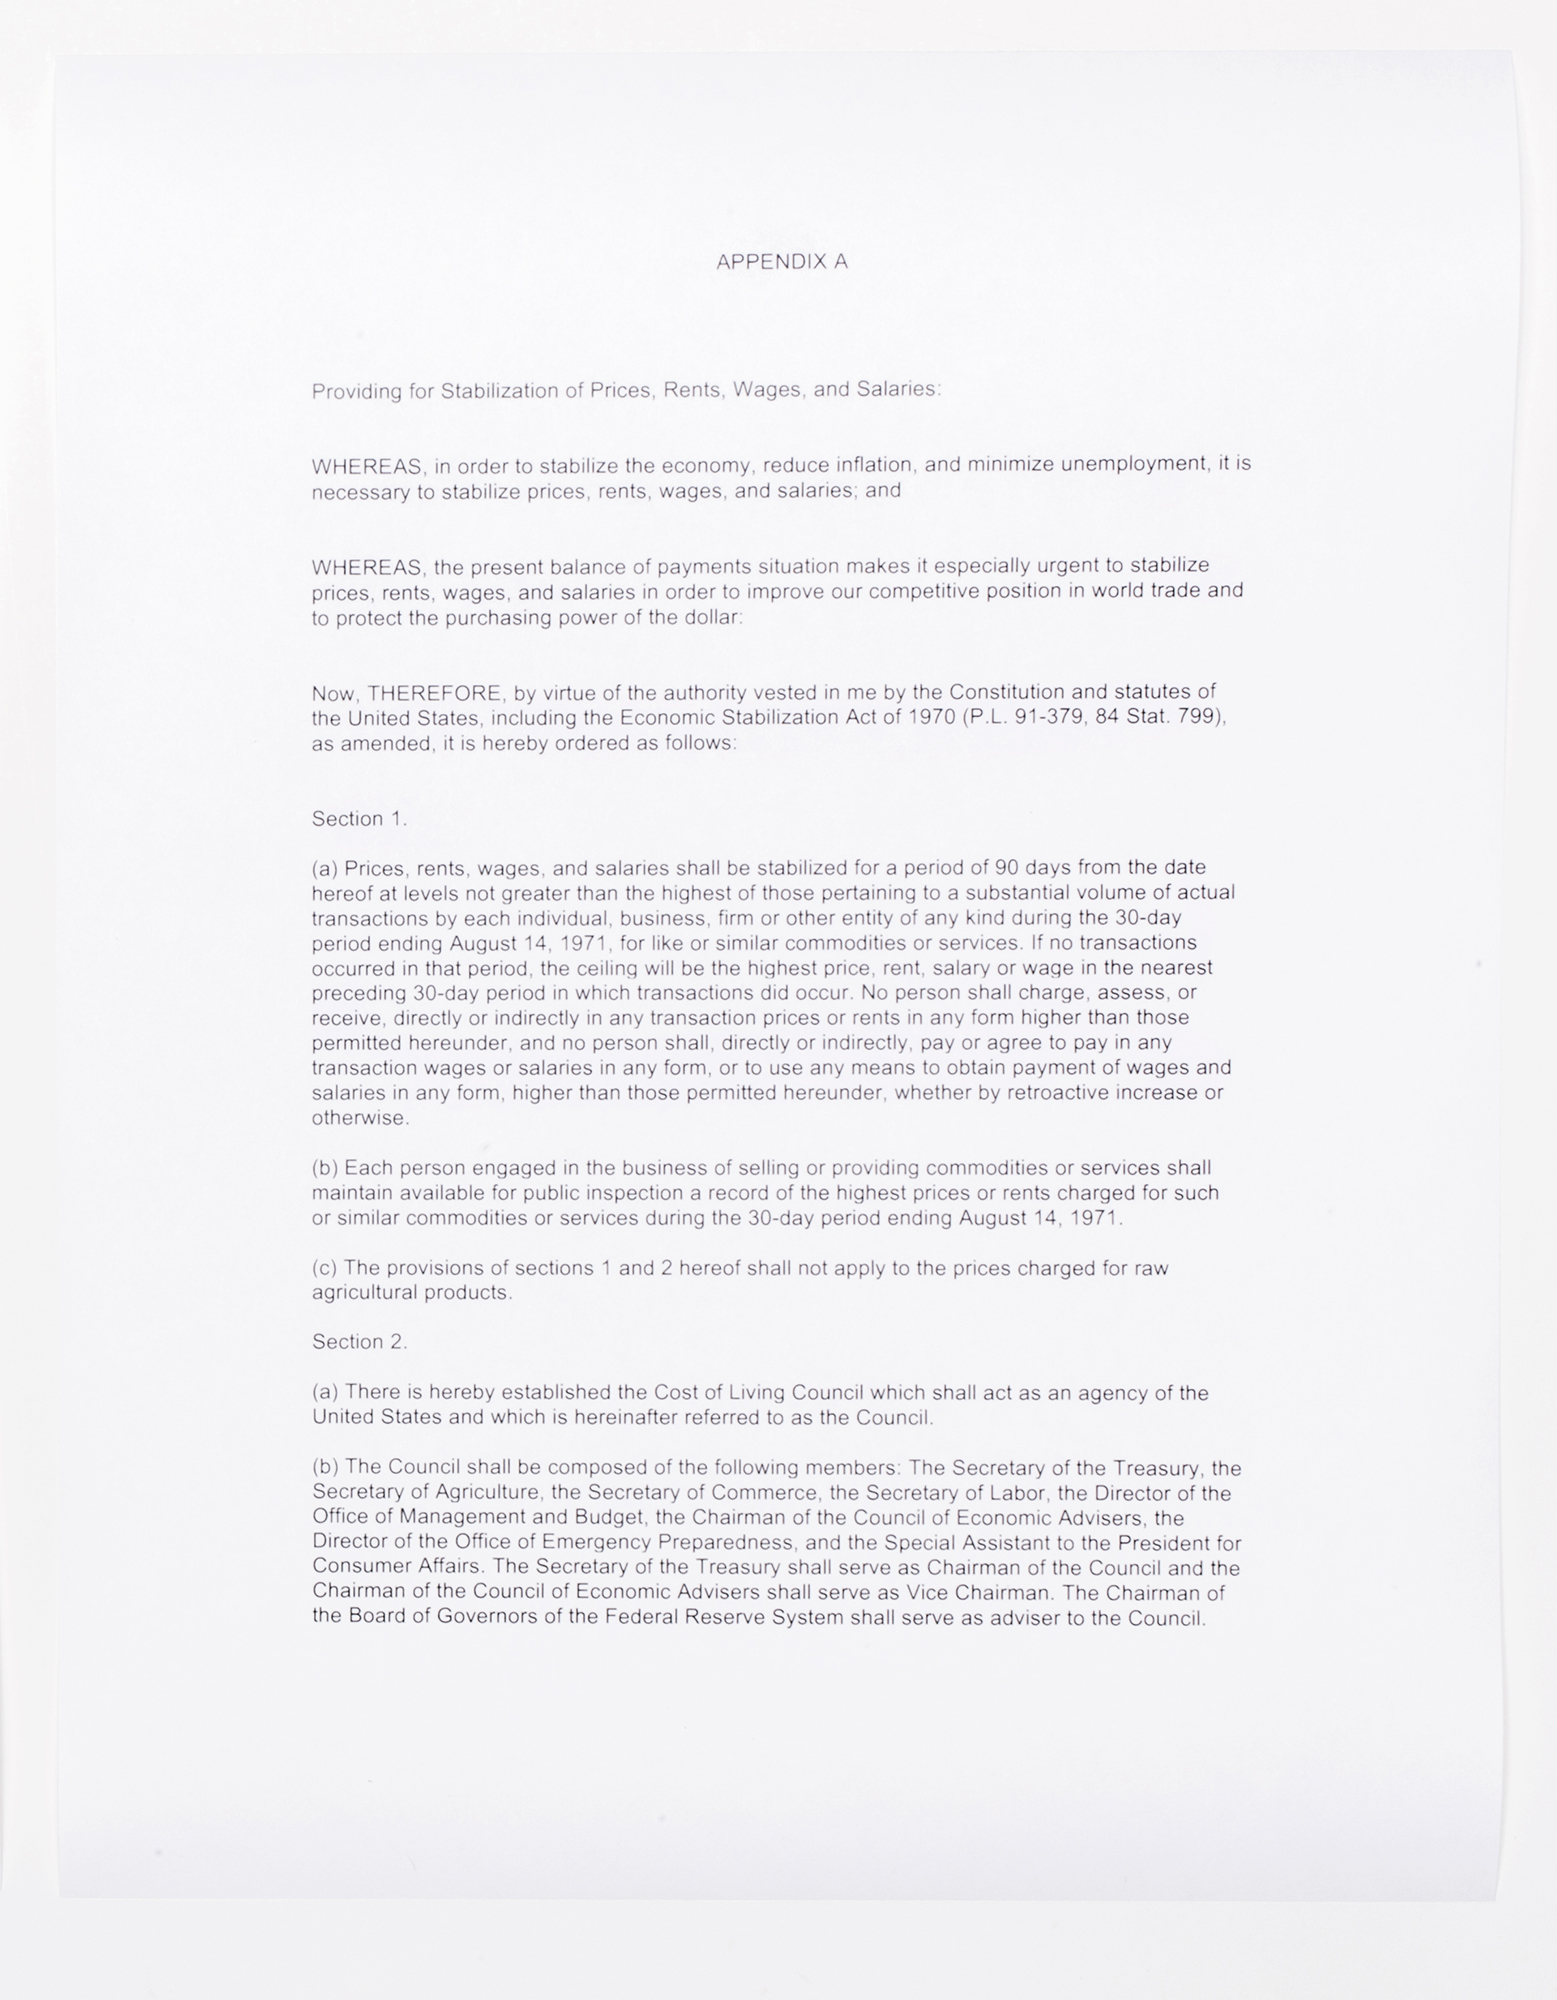 Crystal Voyager press release   With Kelley Walker  Paula Cooper Gallery  New York  New York  2014